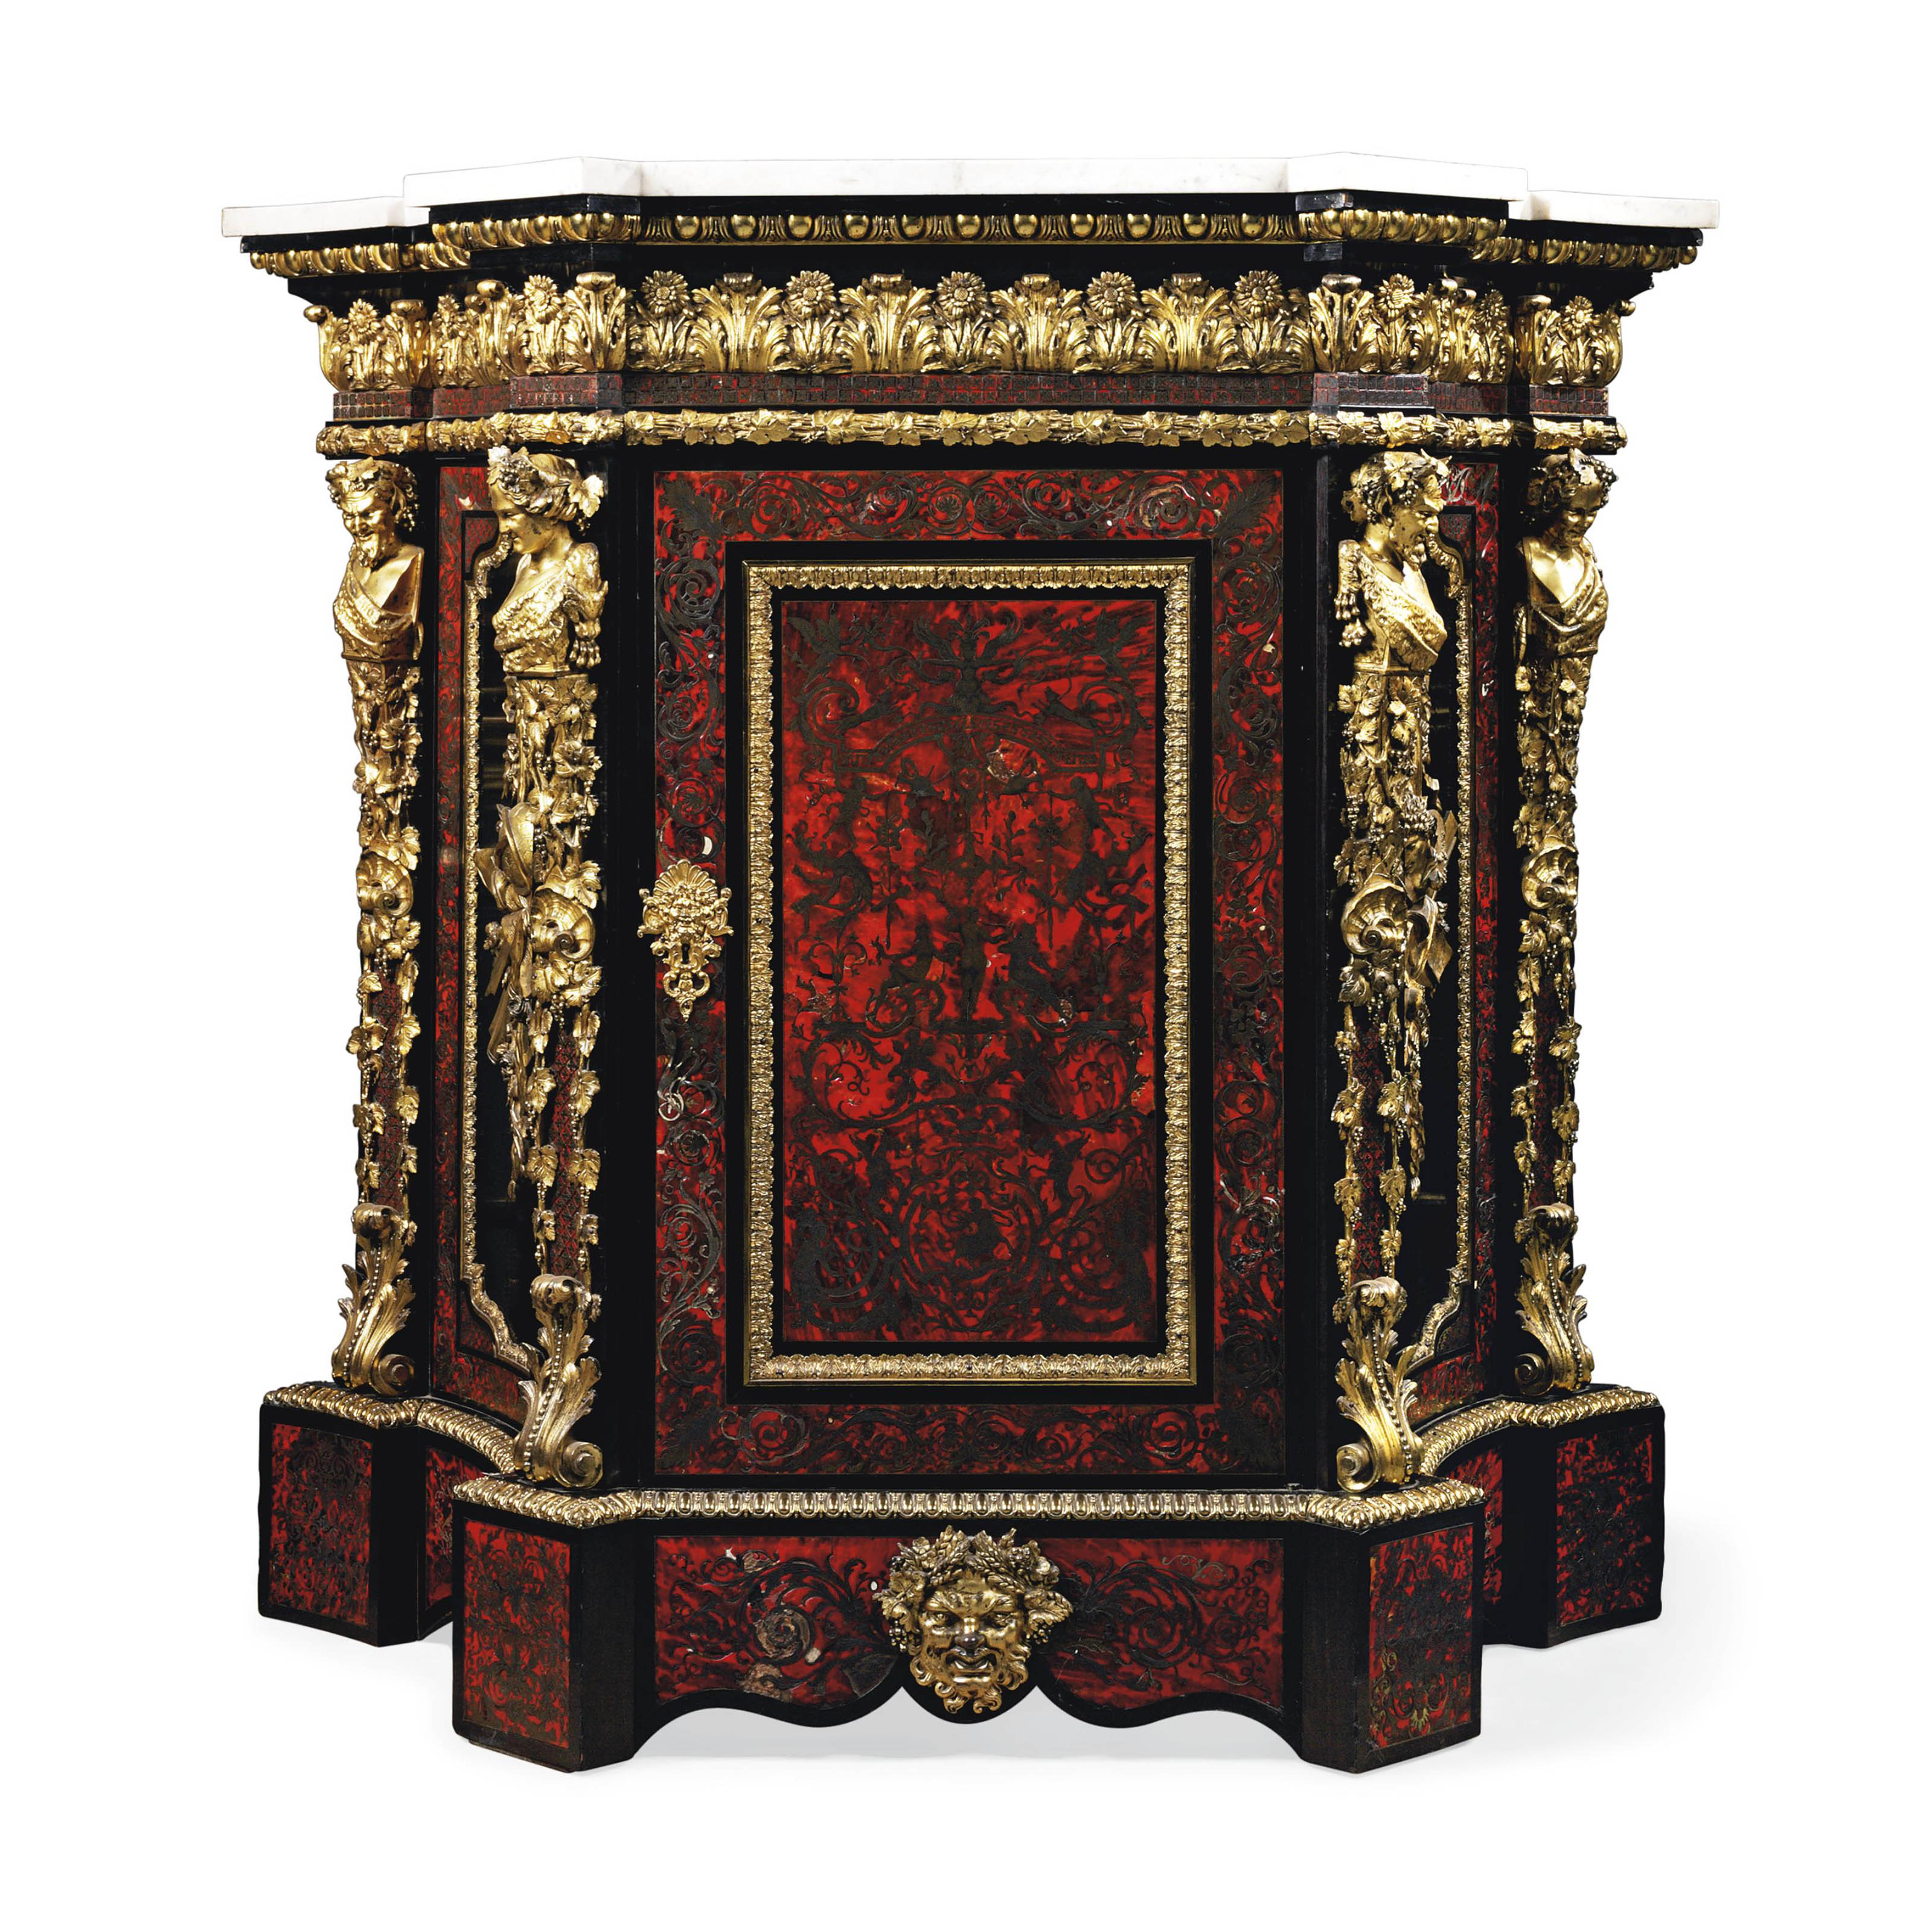 A LARGE NAPOLEON III ORMOLU-MOUNTED CUT BRASS-INLAID RED TORTOISESHELL 'BOULLE' MEUBLE A HAUTEUR D'APPUI